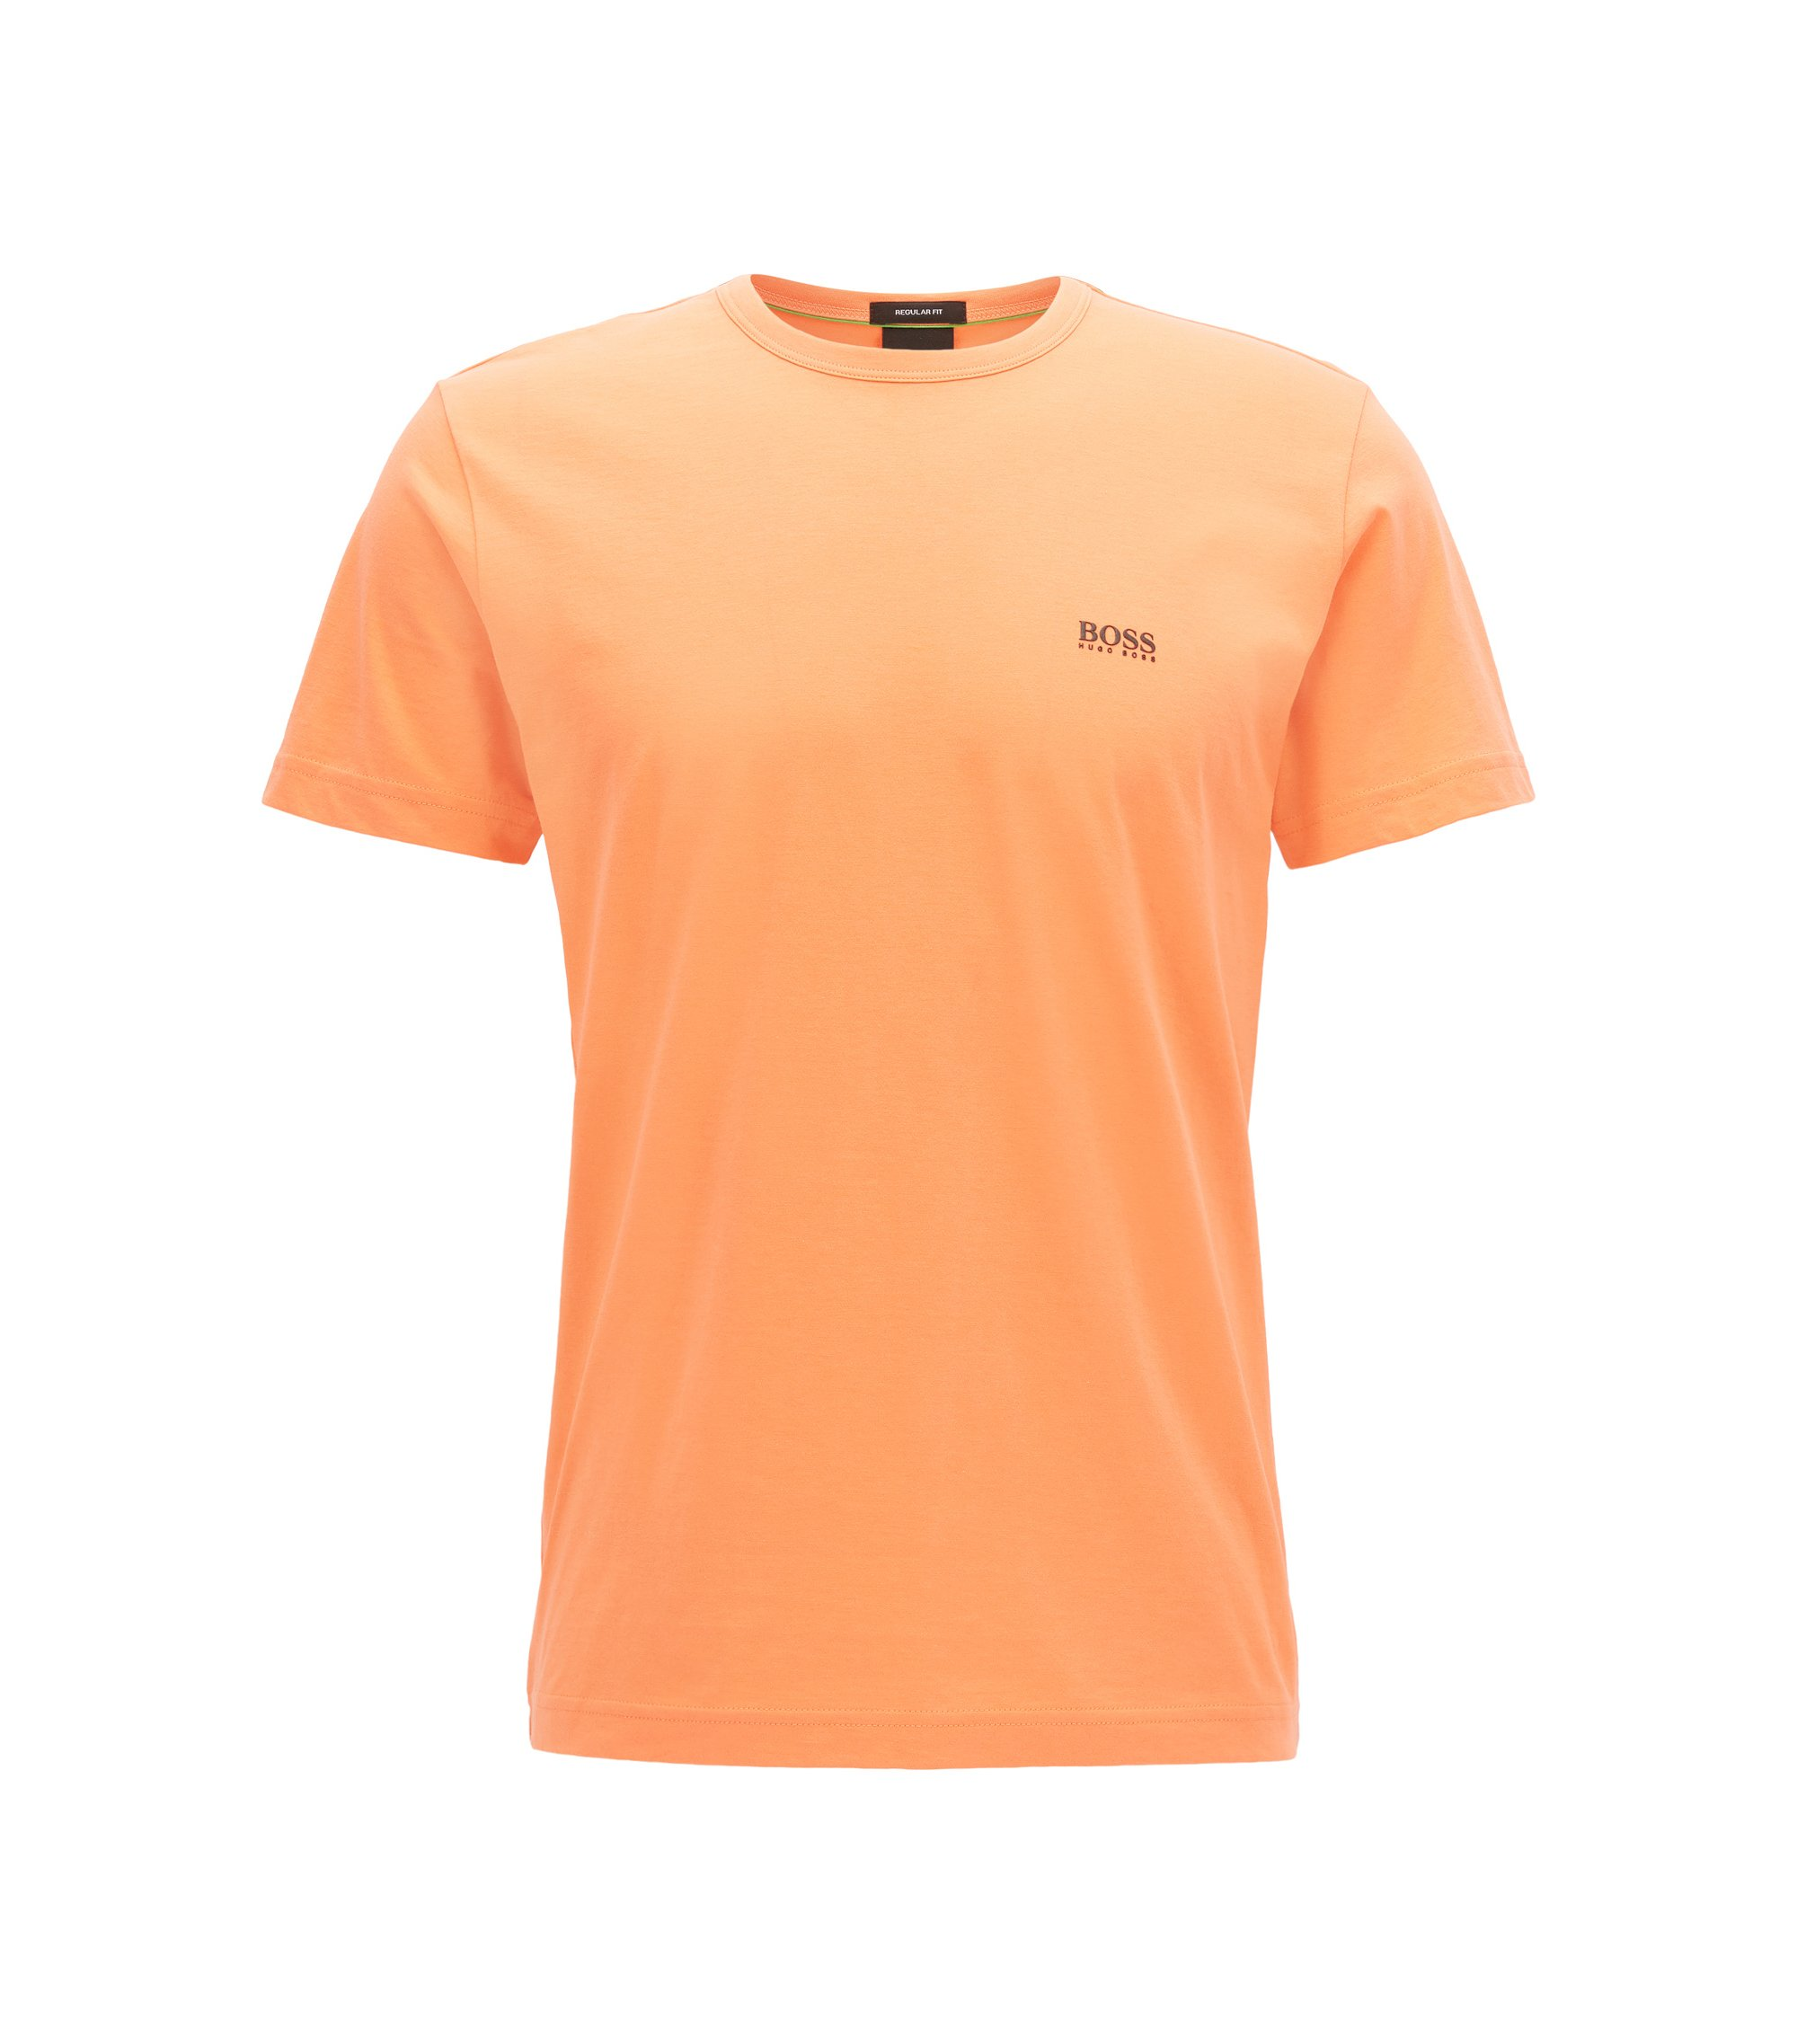 T-shirt Regular Fit en jersey simple, Orange clair